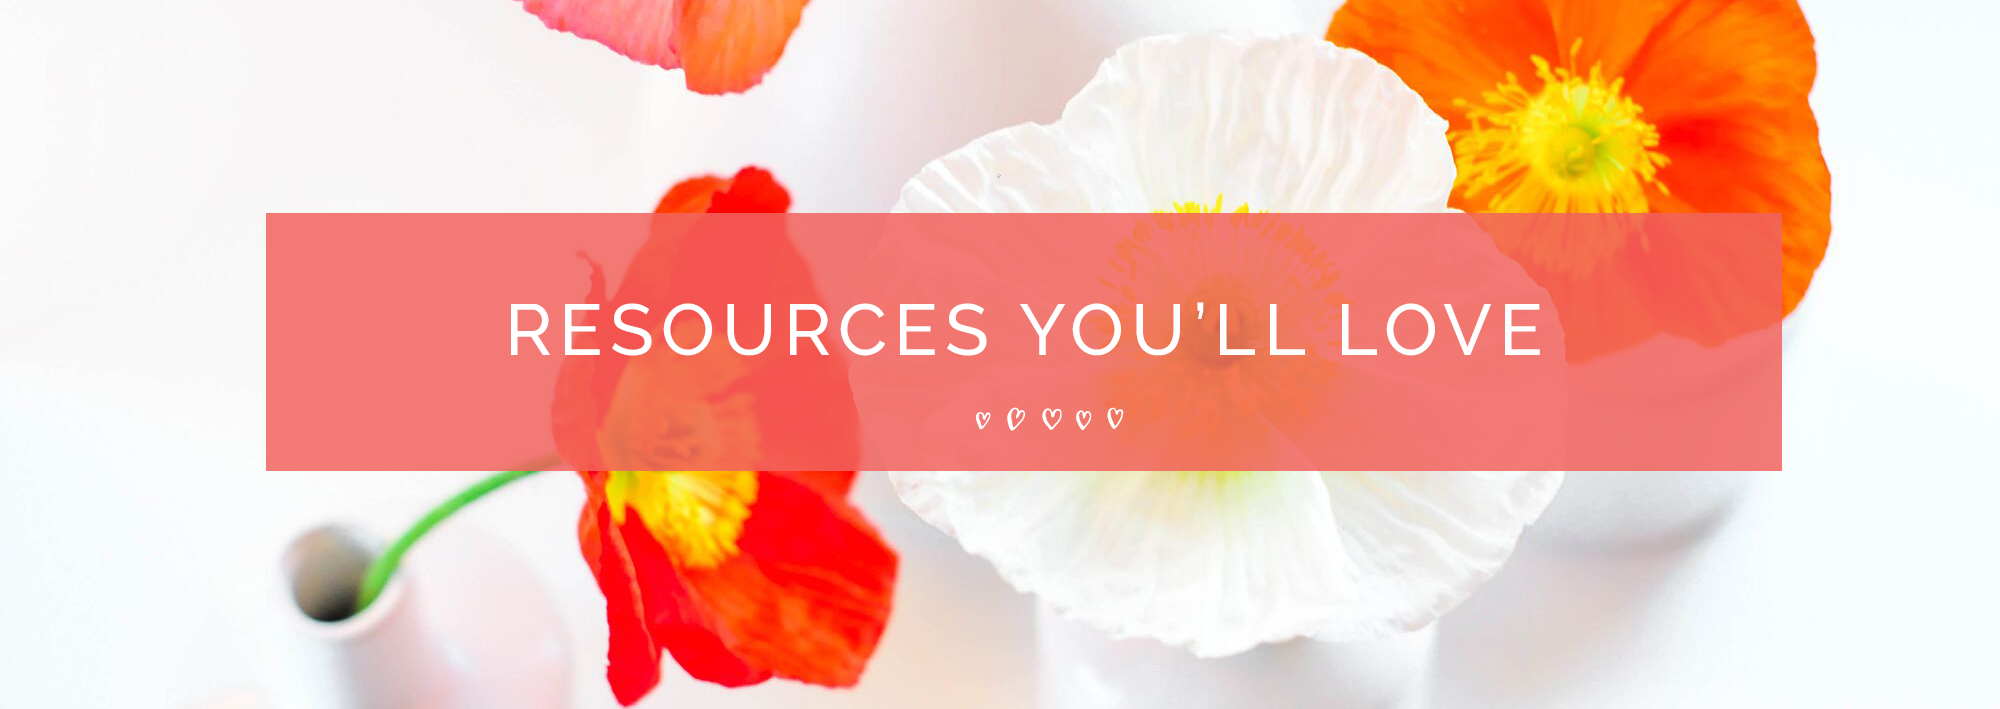 Resources Page Header